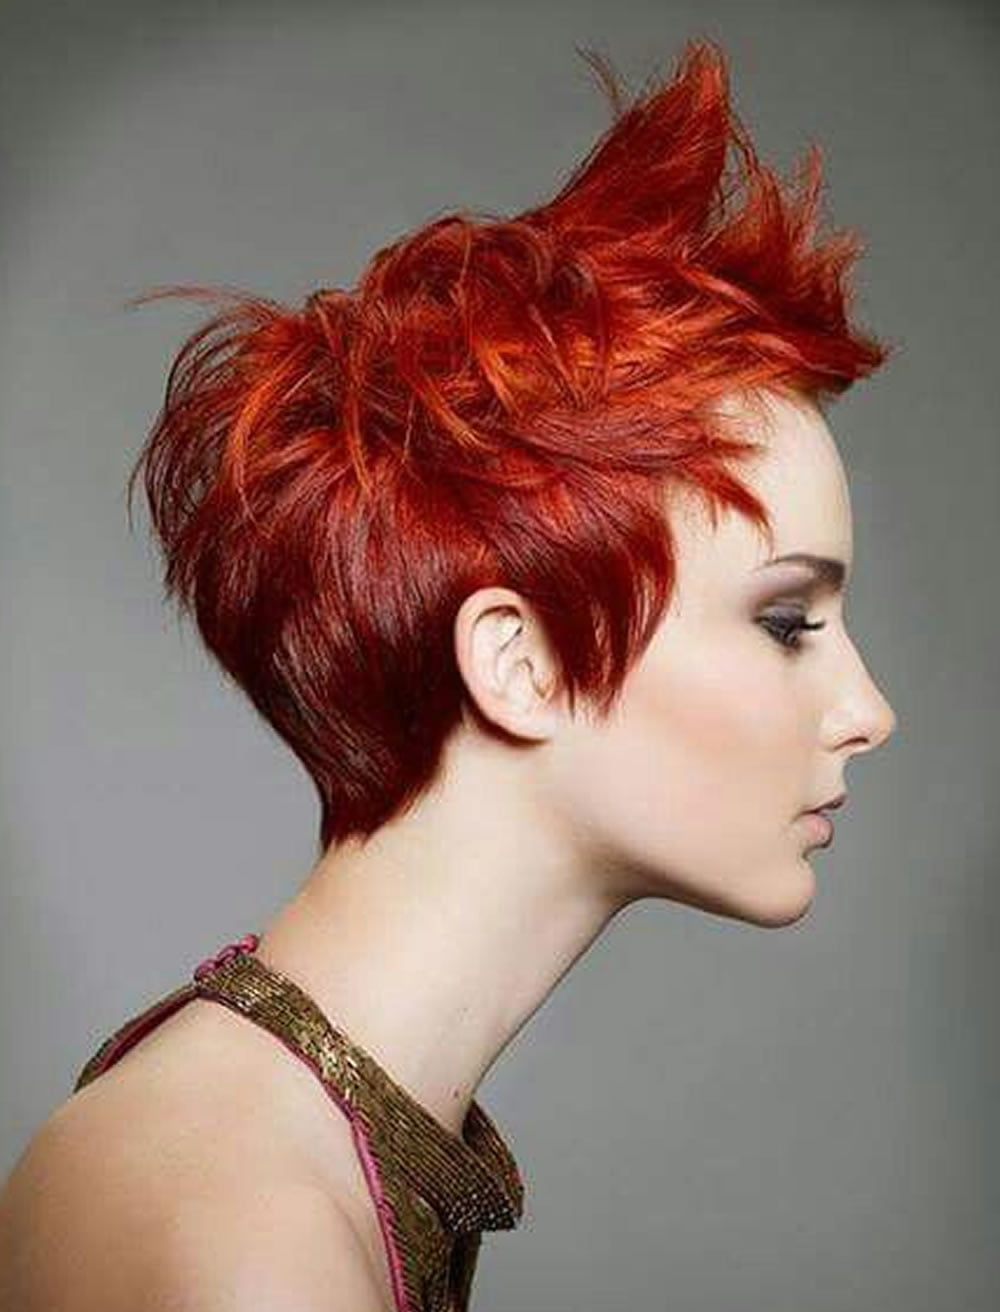 Short Hair Style Ideas and Tutorial for 2018